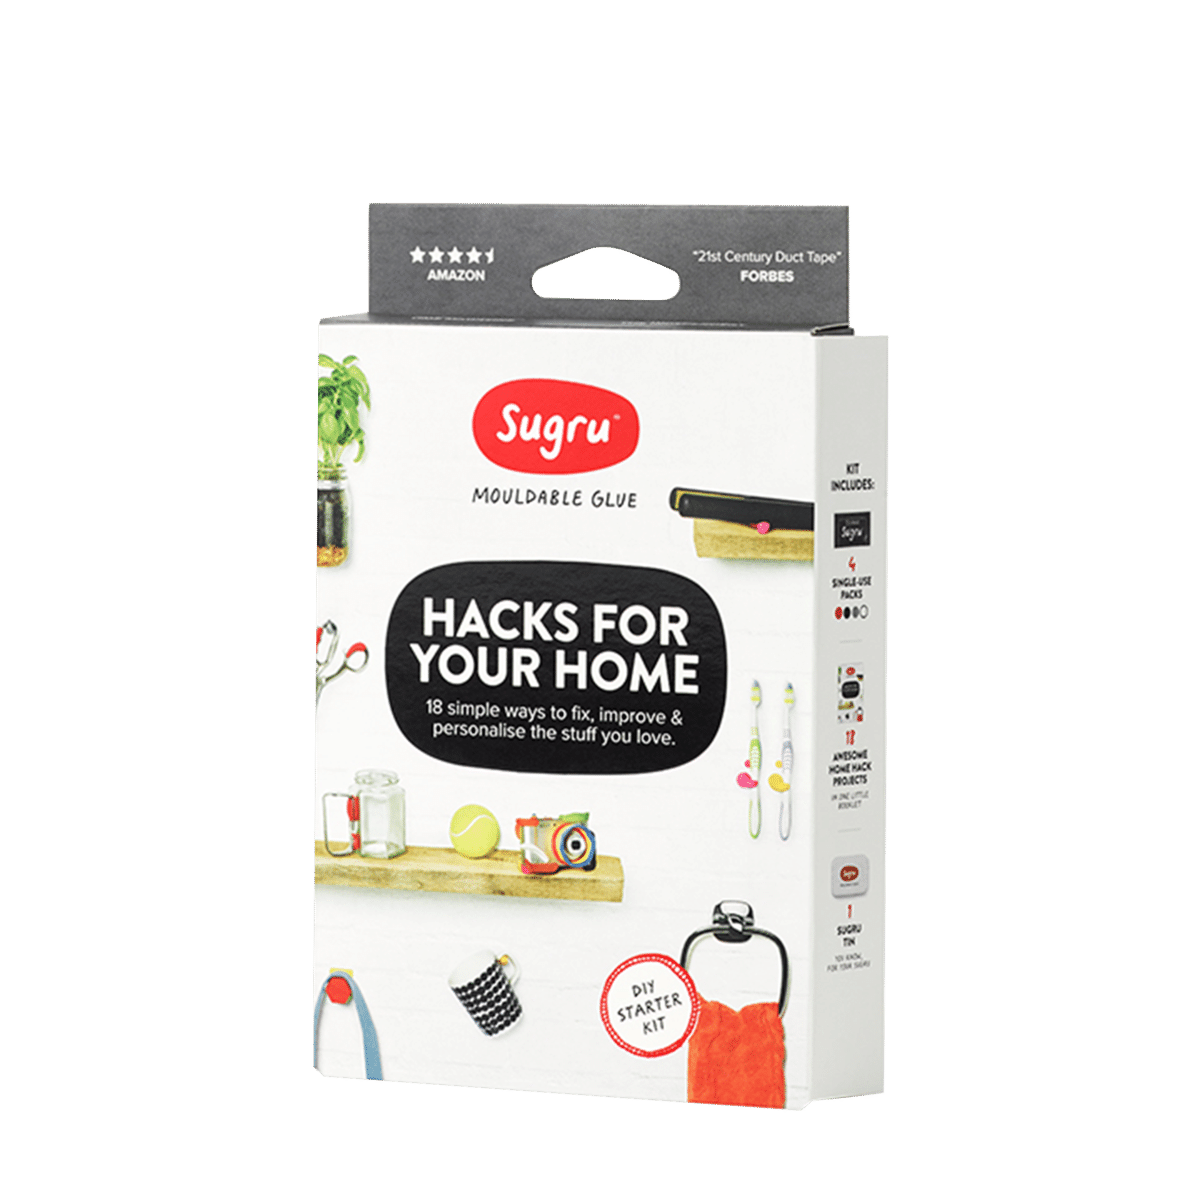 Sugru Mouldable Glue Kits: Hacks For Your Home $5.50, Rebel Tech